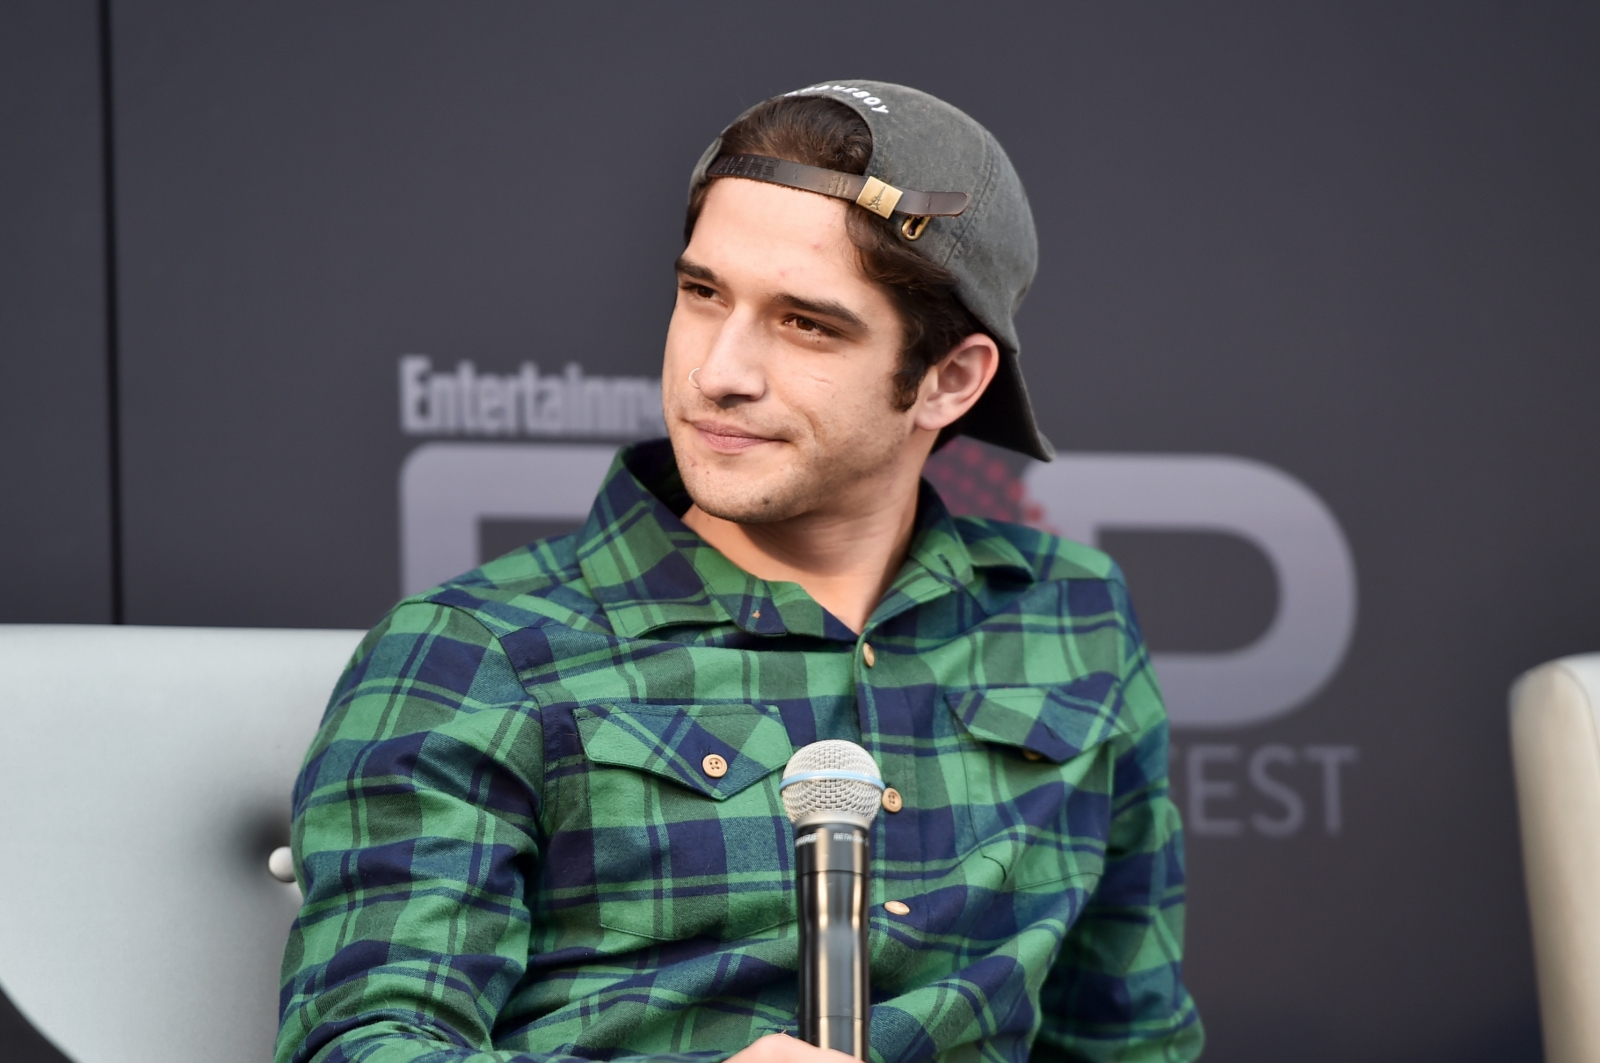 Tyler Posey nude video leaked online: Fans rally to support